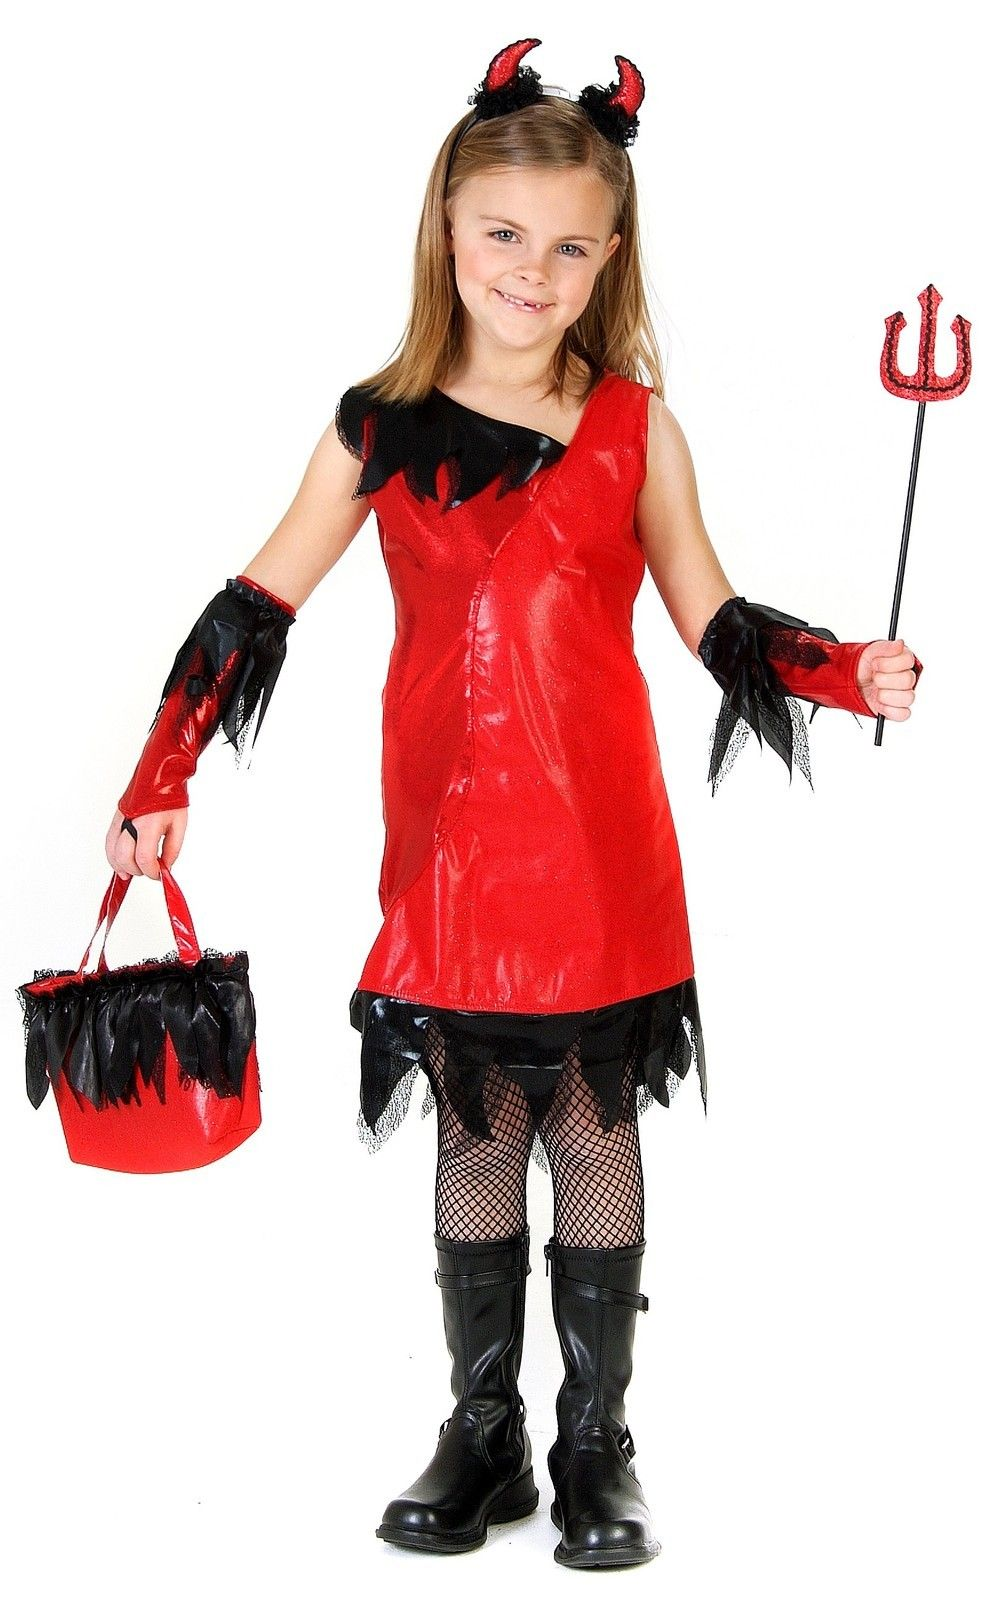 Devil girl child costume ebay cool outfits bella for Cool halloween costumes for kids girls